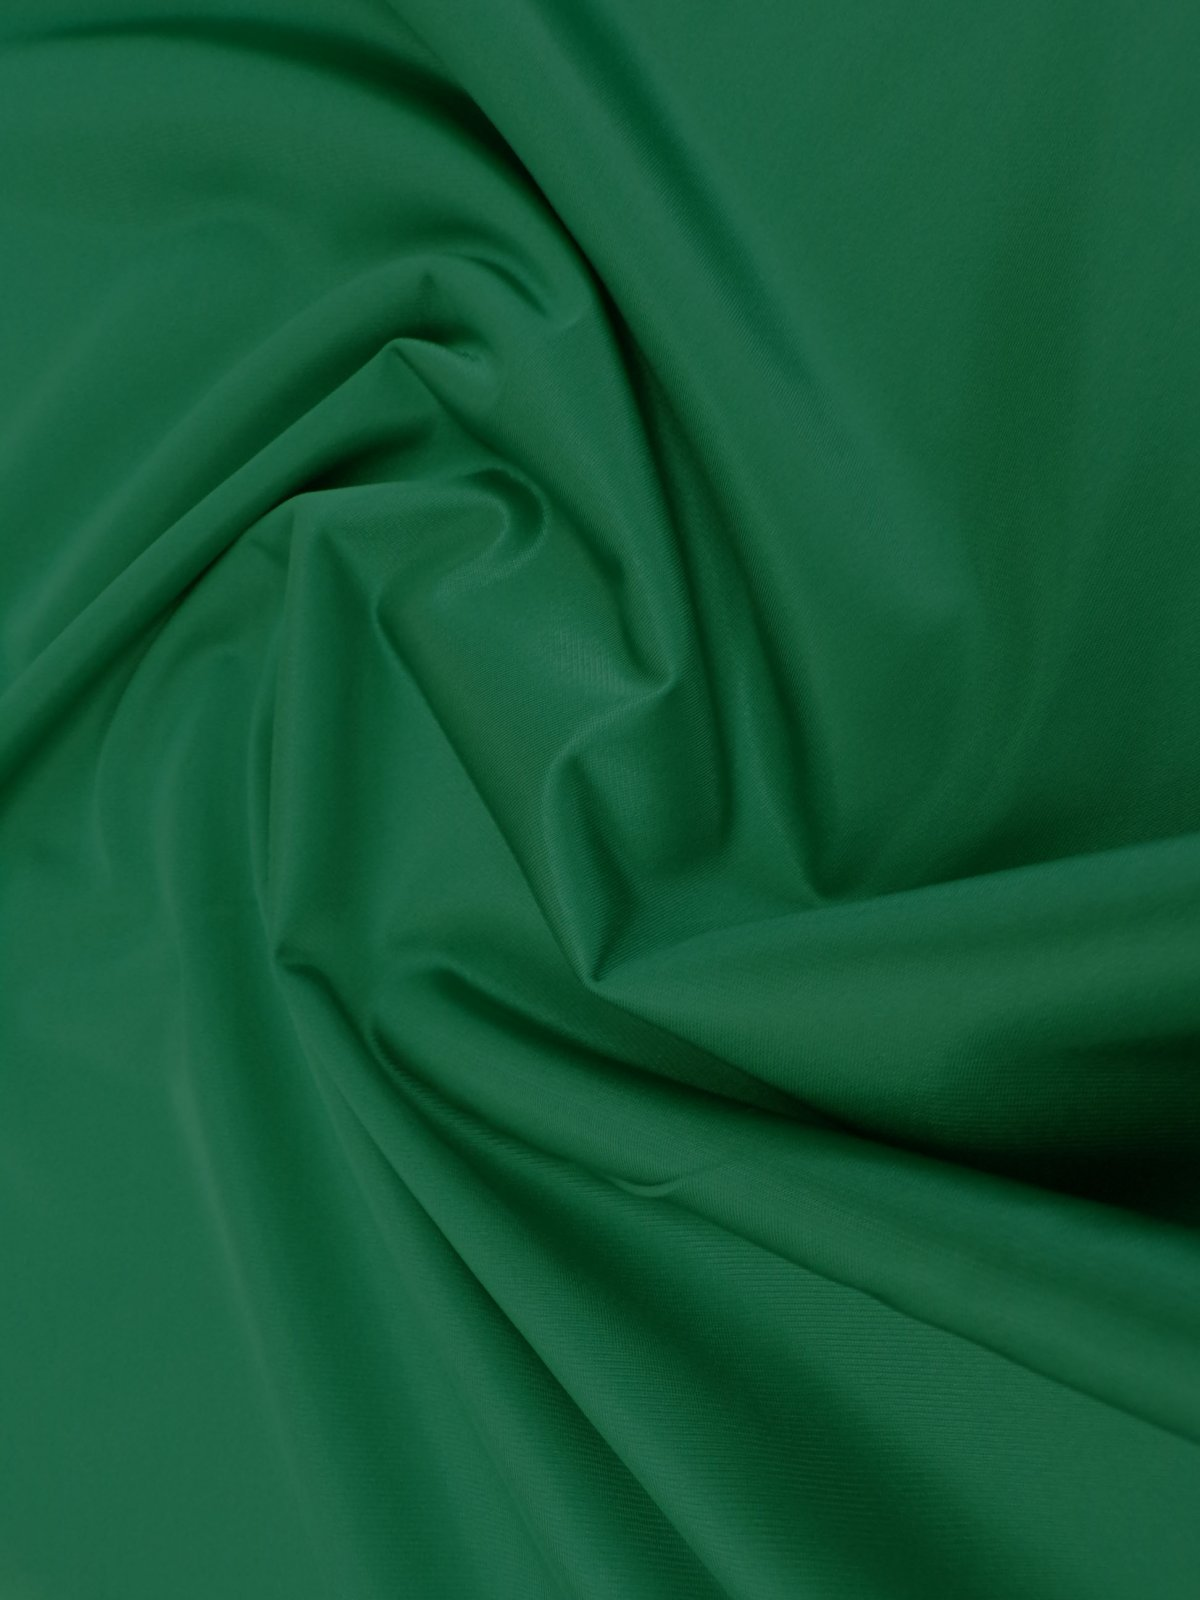 40 Denier Nylon Tricot - Dark Green